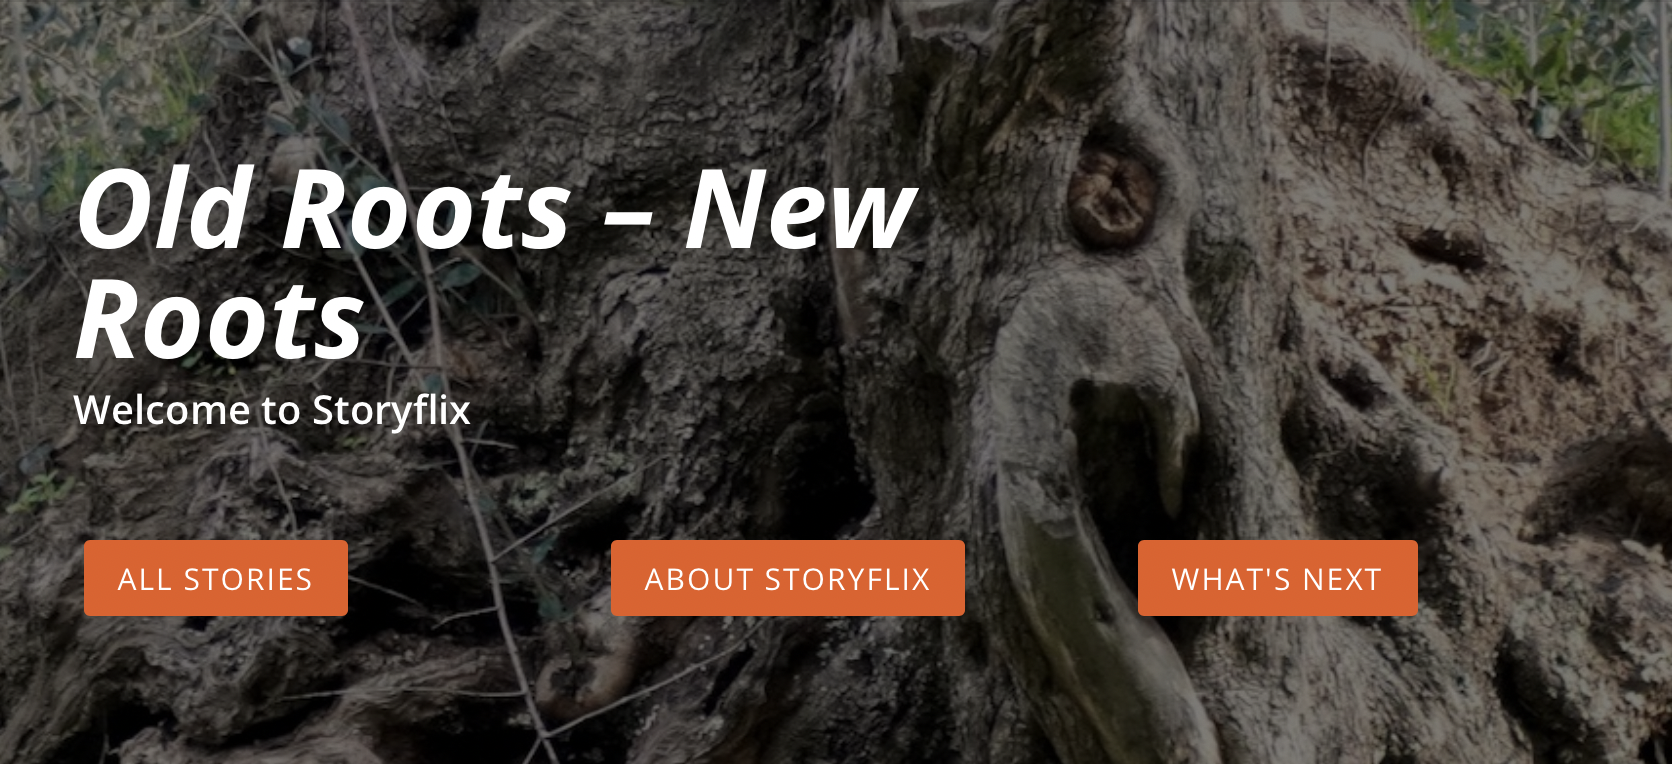 Old Roots - New Routes